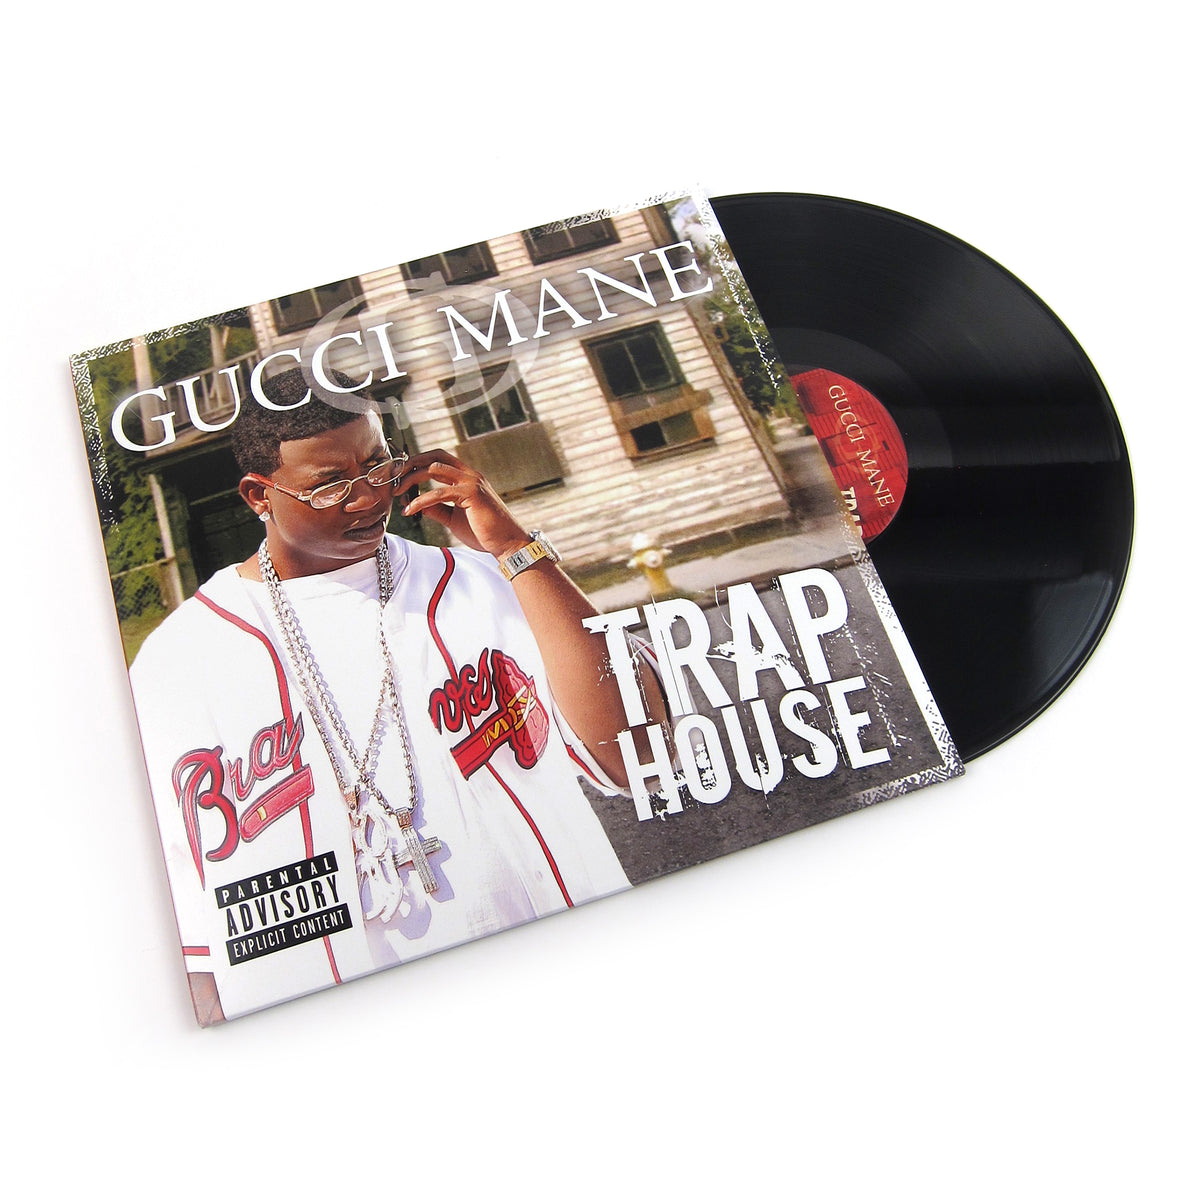 Gucci Mane: Trap House Vinyl 2LP